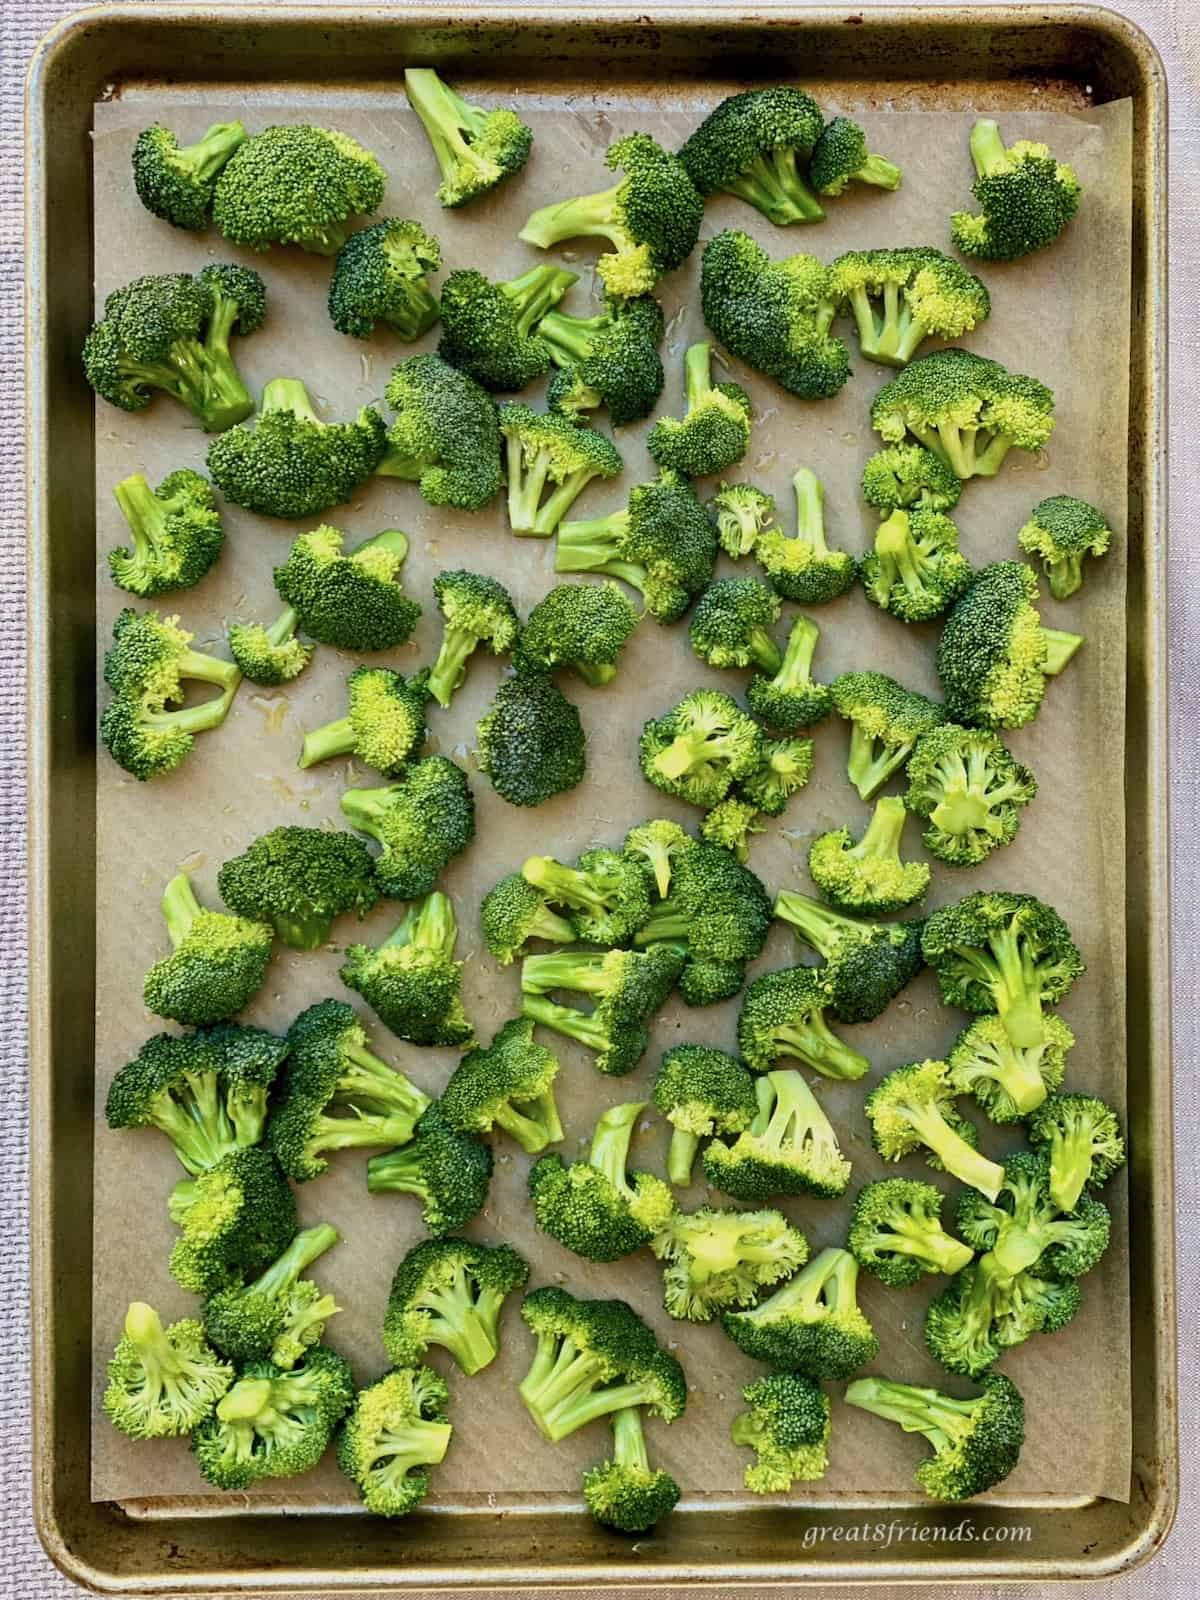 Raw broccoli florets on a baking sheet ready to be roasted in the oven.